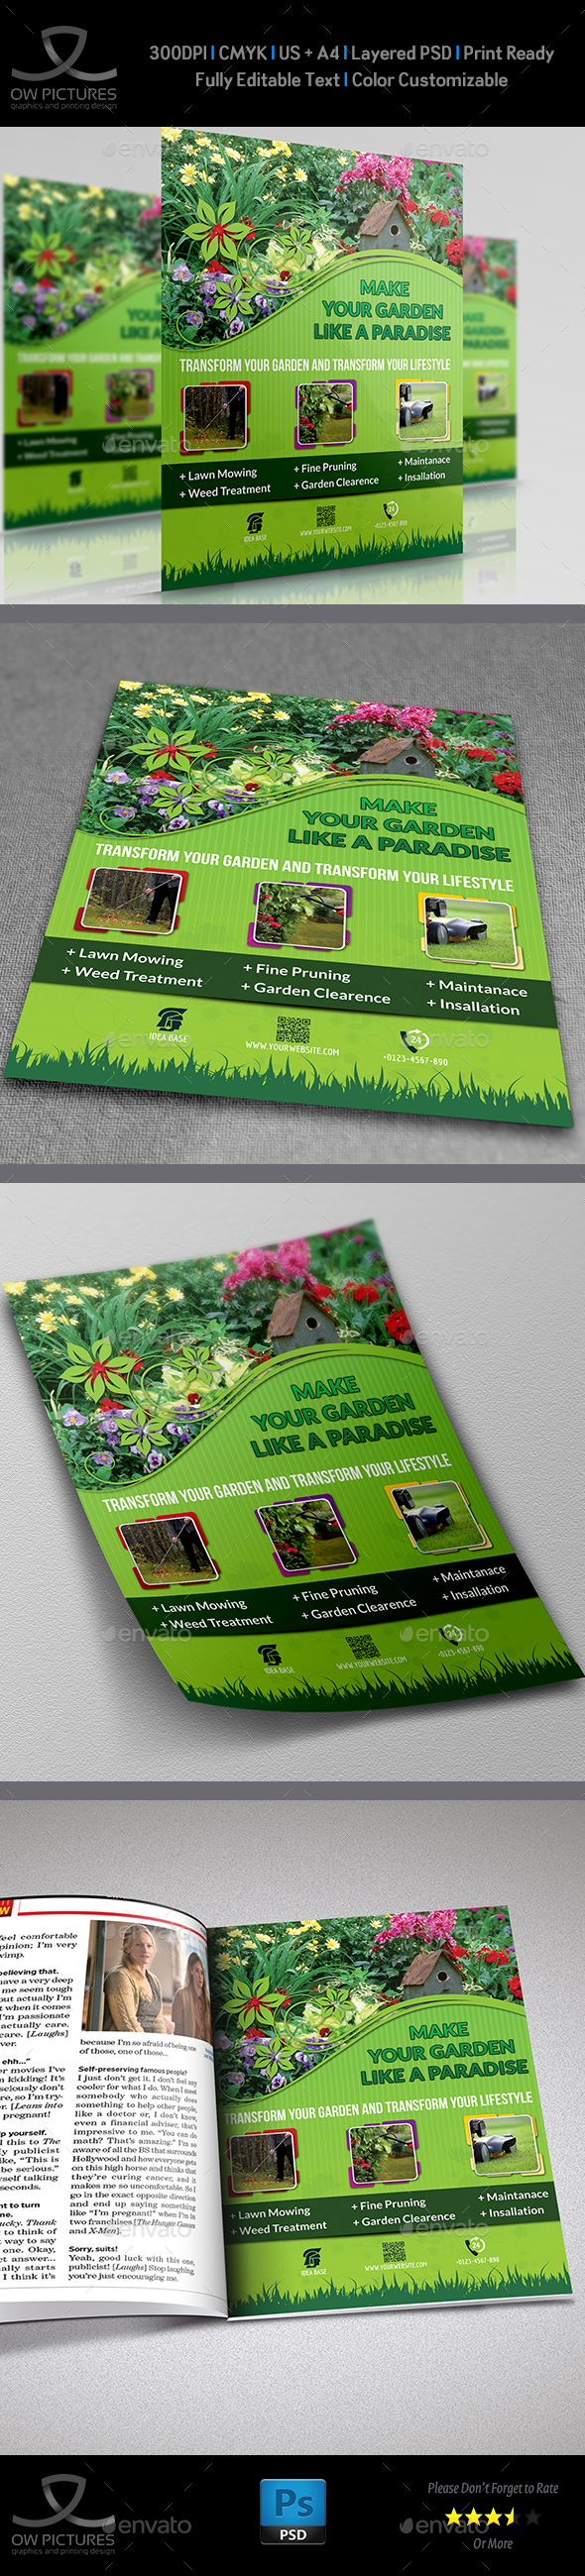 Garden Services Flyer Template - Commerce Flyers